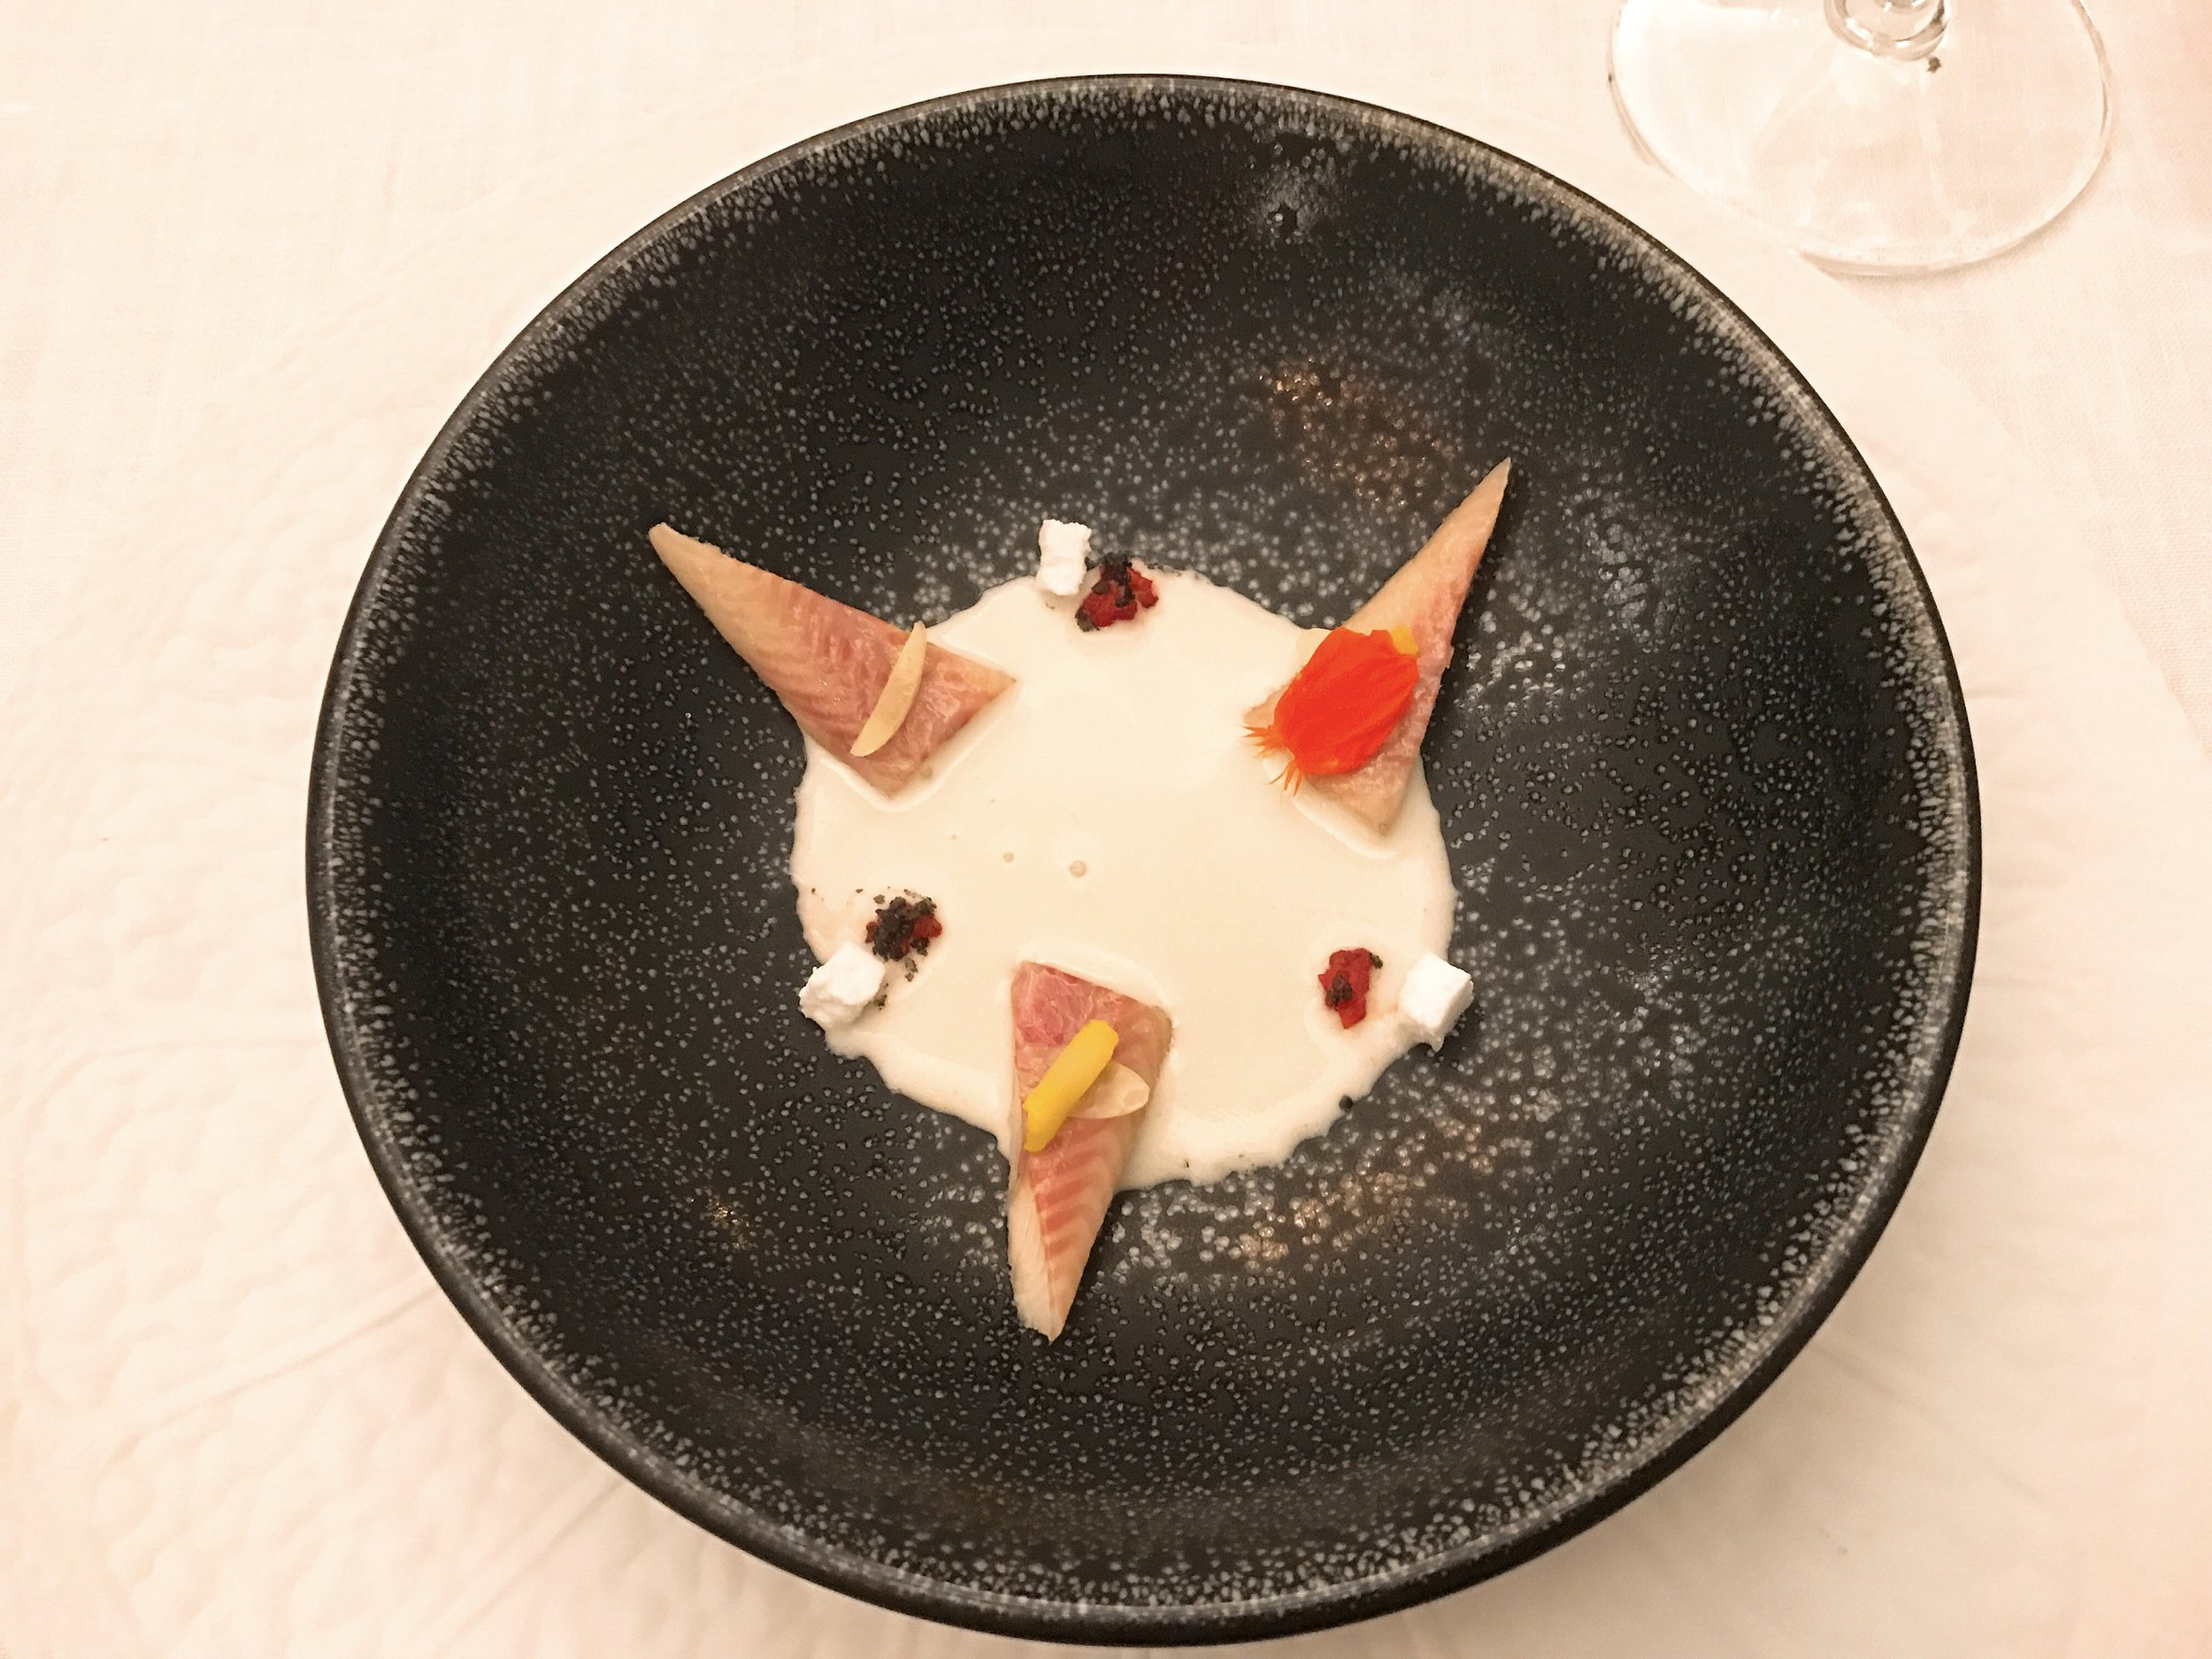 Eel with Rocoto and White Coconut after the Coconut Milk was poured